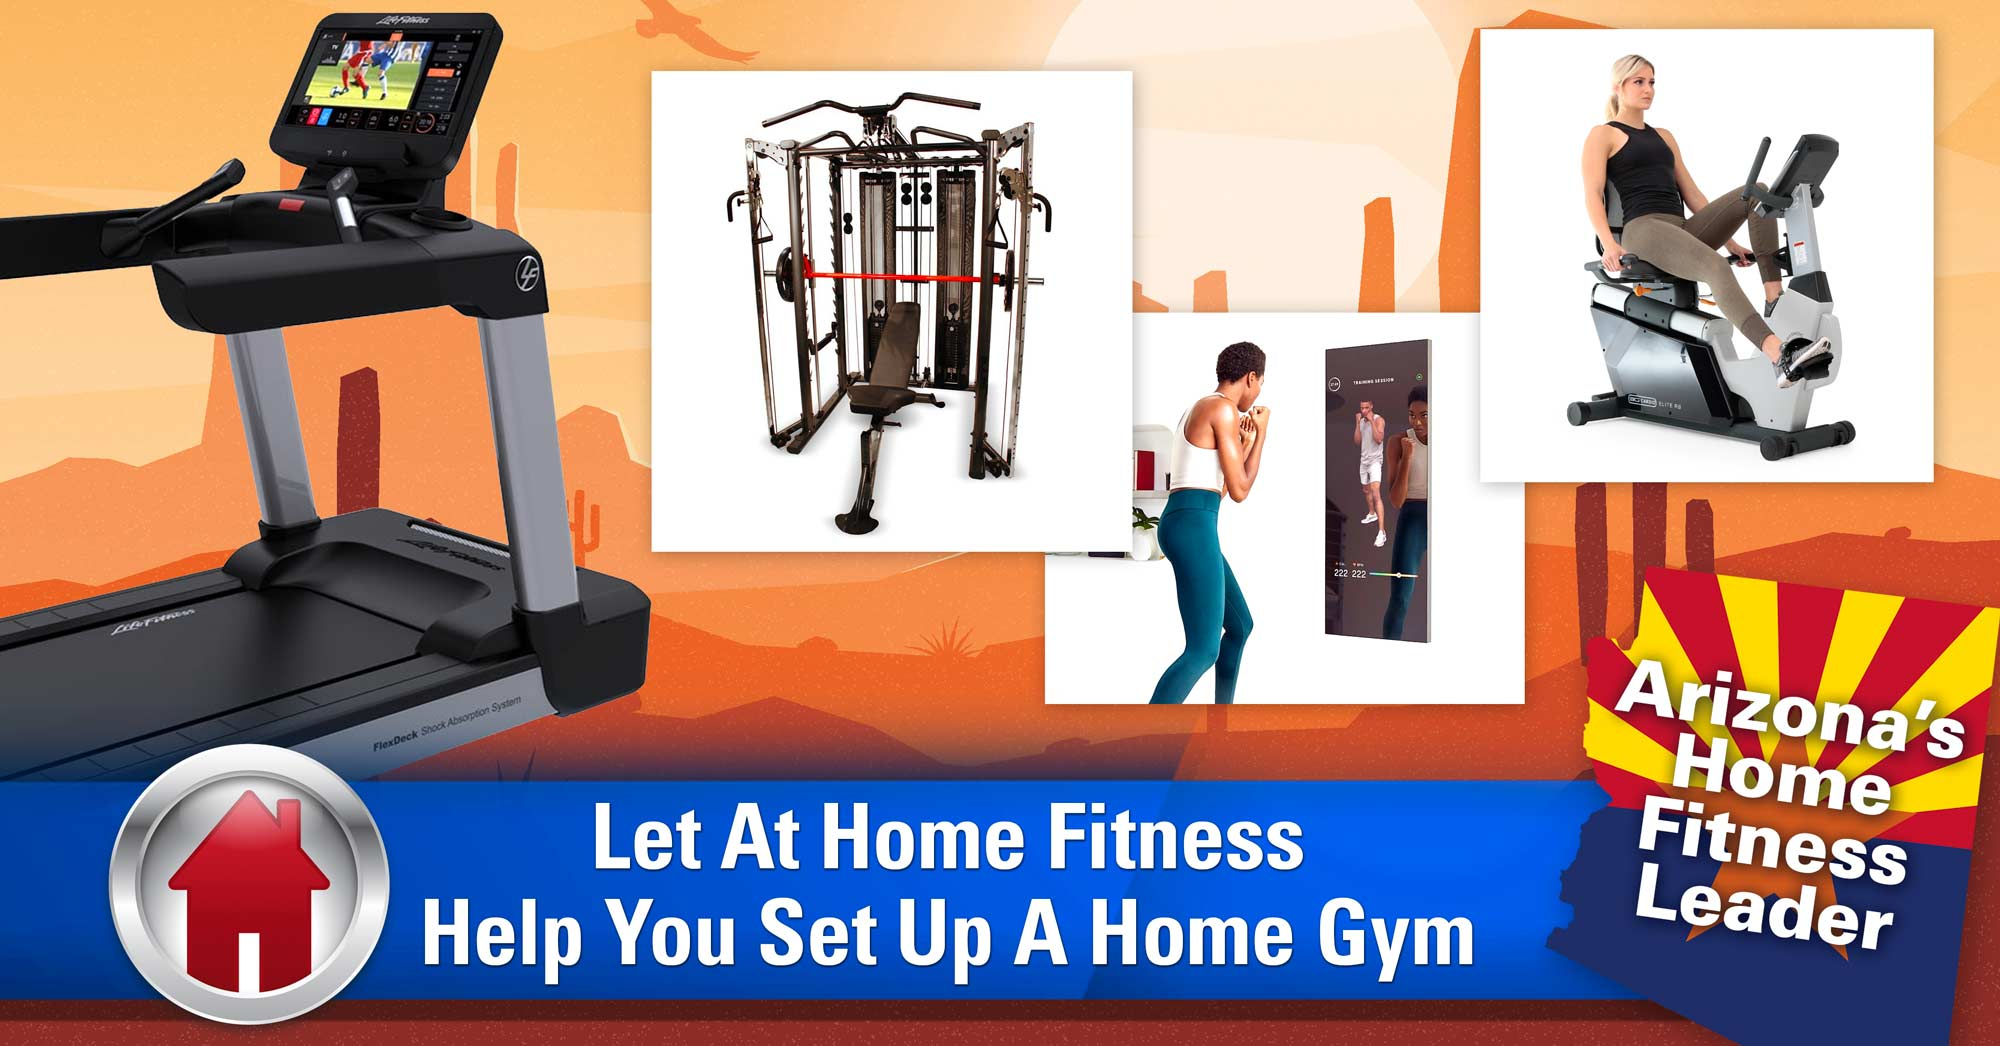 Let At Home Fitness Help You Set Up A Home Gym